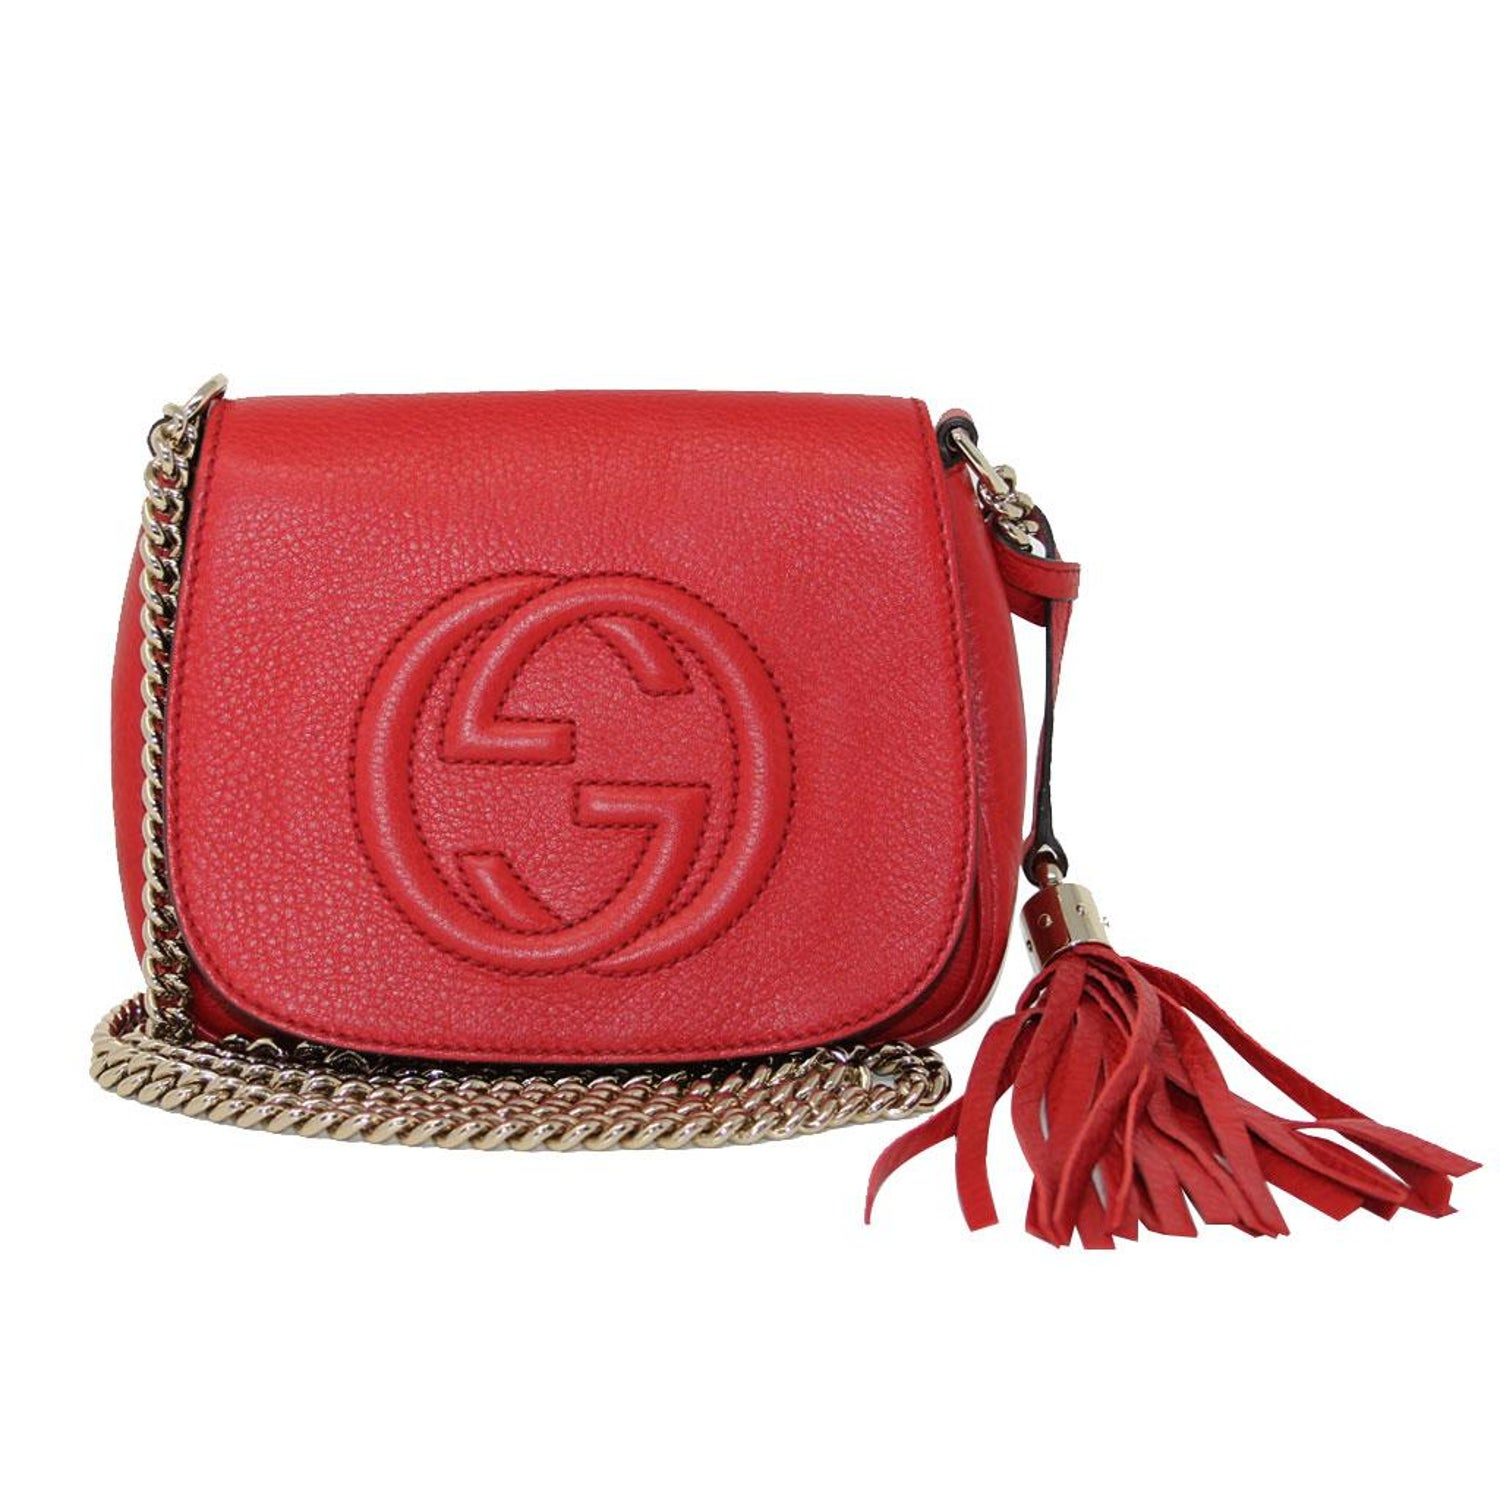 9fe3355f121 Gucci Soho Flap Red Leather Light Gold Chain w  Tassel Bag at 1stdibs